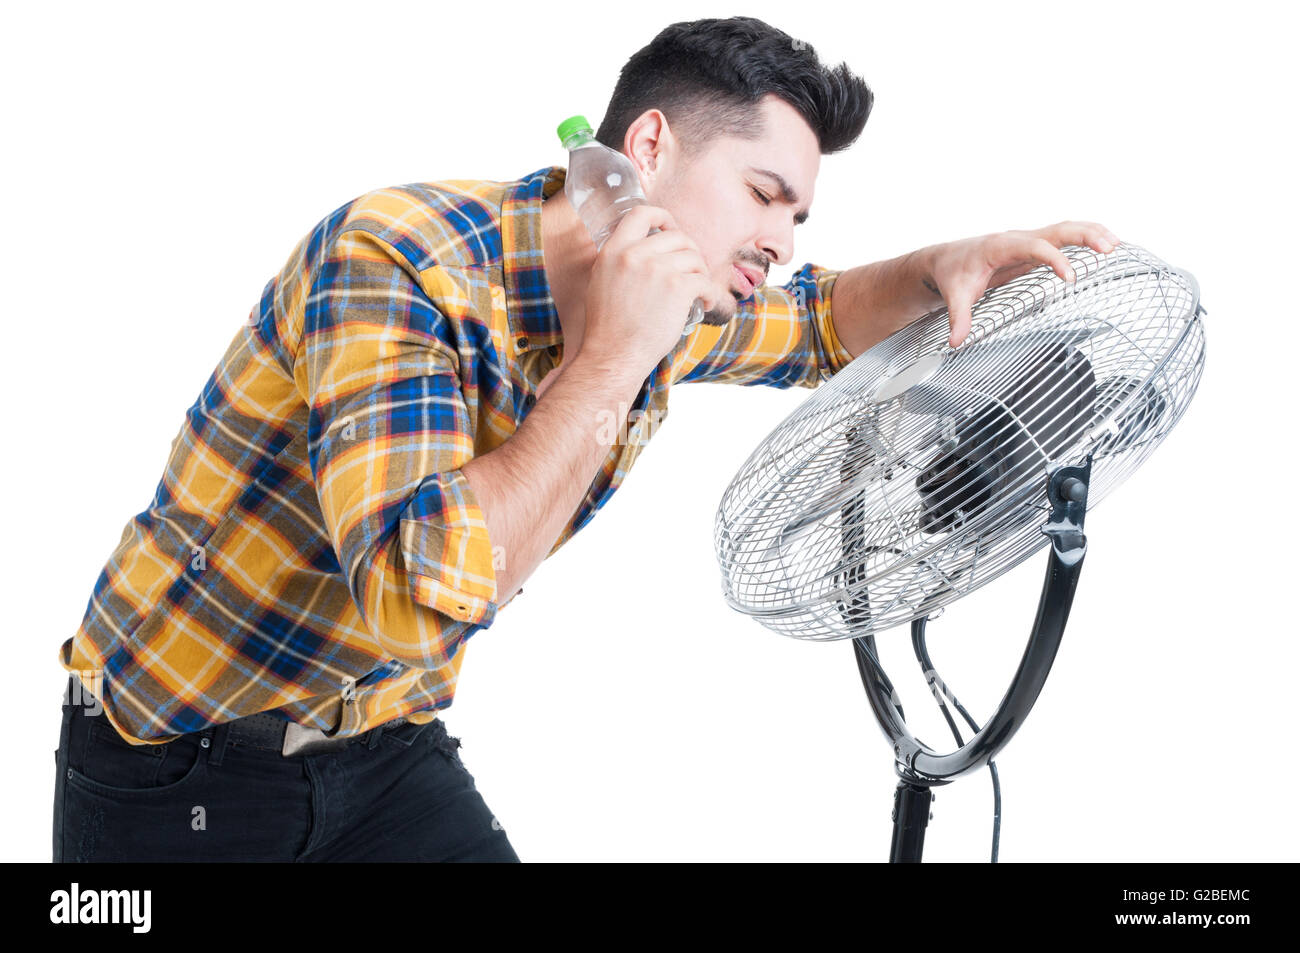 Sweaty and thirsty man standing near fan and cooling off on hot summer days isolated on white background - Stock Image